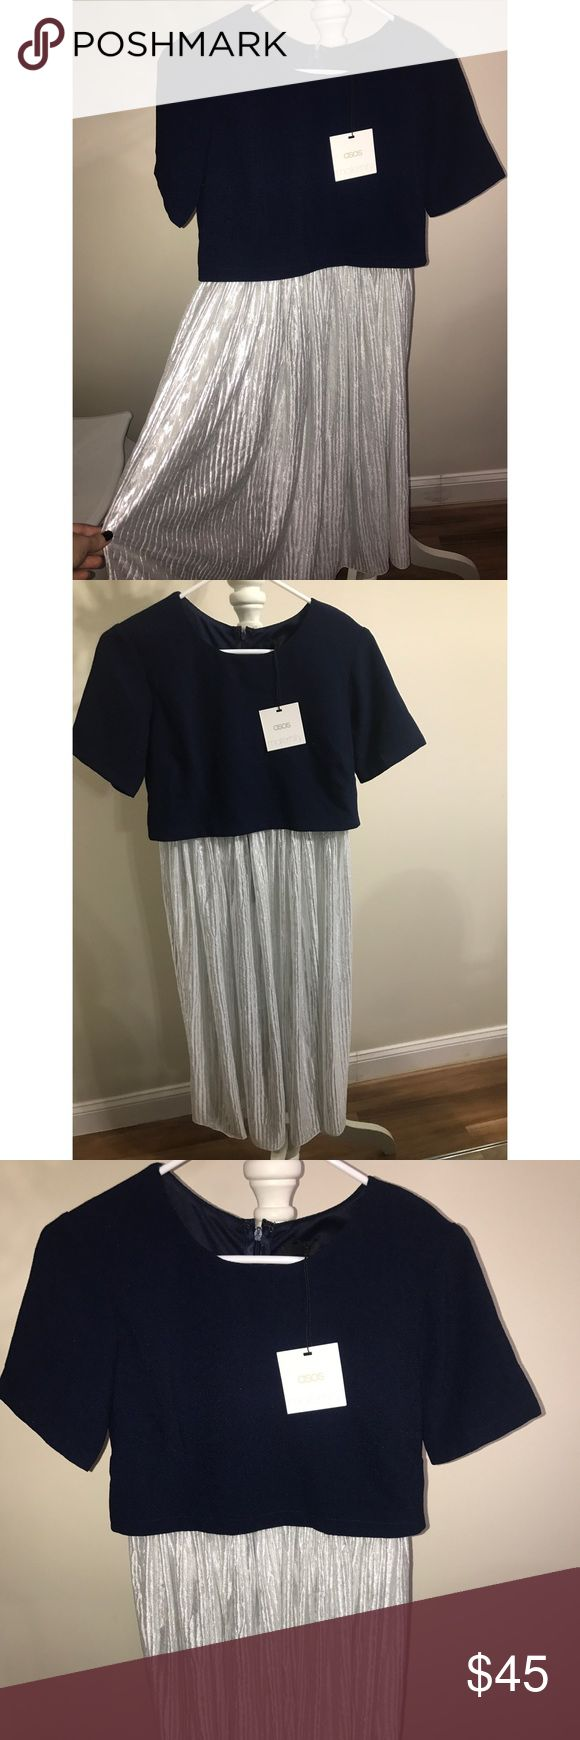 ASOS BRAND MATERNITY DRESS ASOS BRAND MATERNITY DRESS BEAUTIFUL NAVY BLUE ON TOP AND A SILKY SHINY SILVER ON THE BOTTOM. NEVER WORN TAG STILL ON ASOS Maternity Dresses Midi